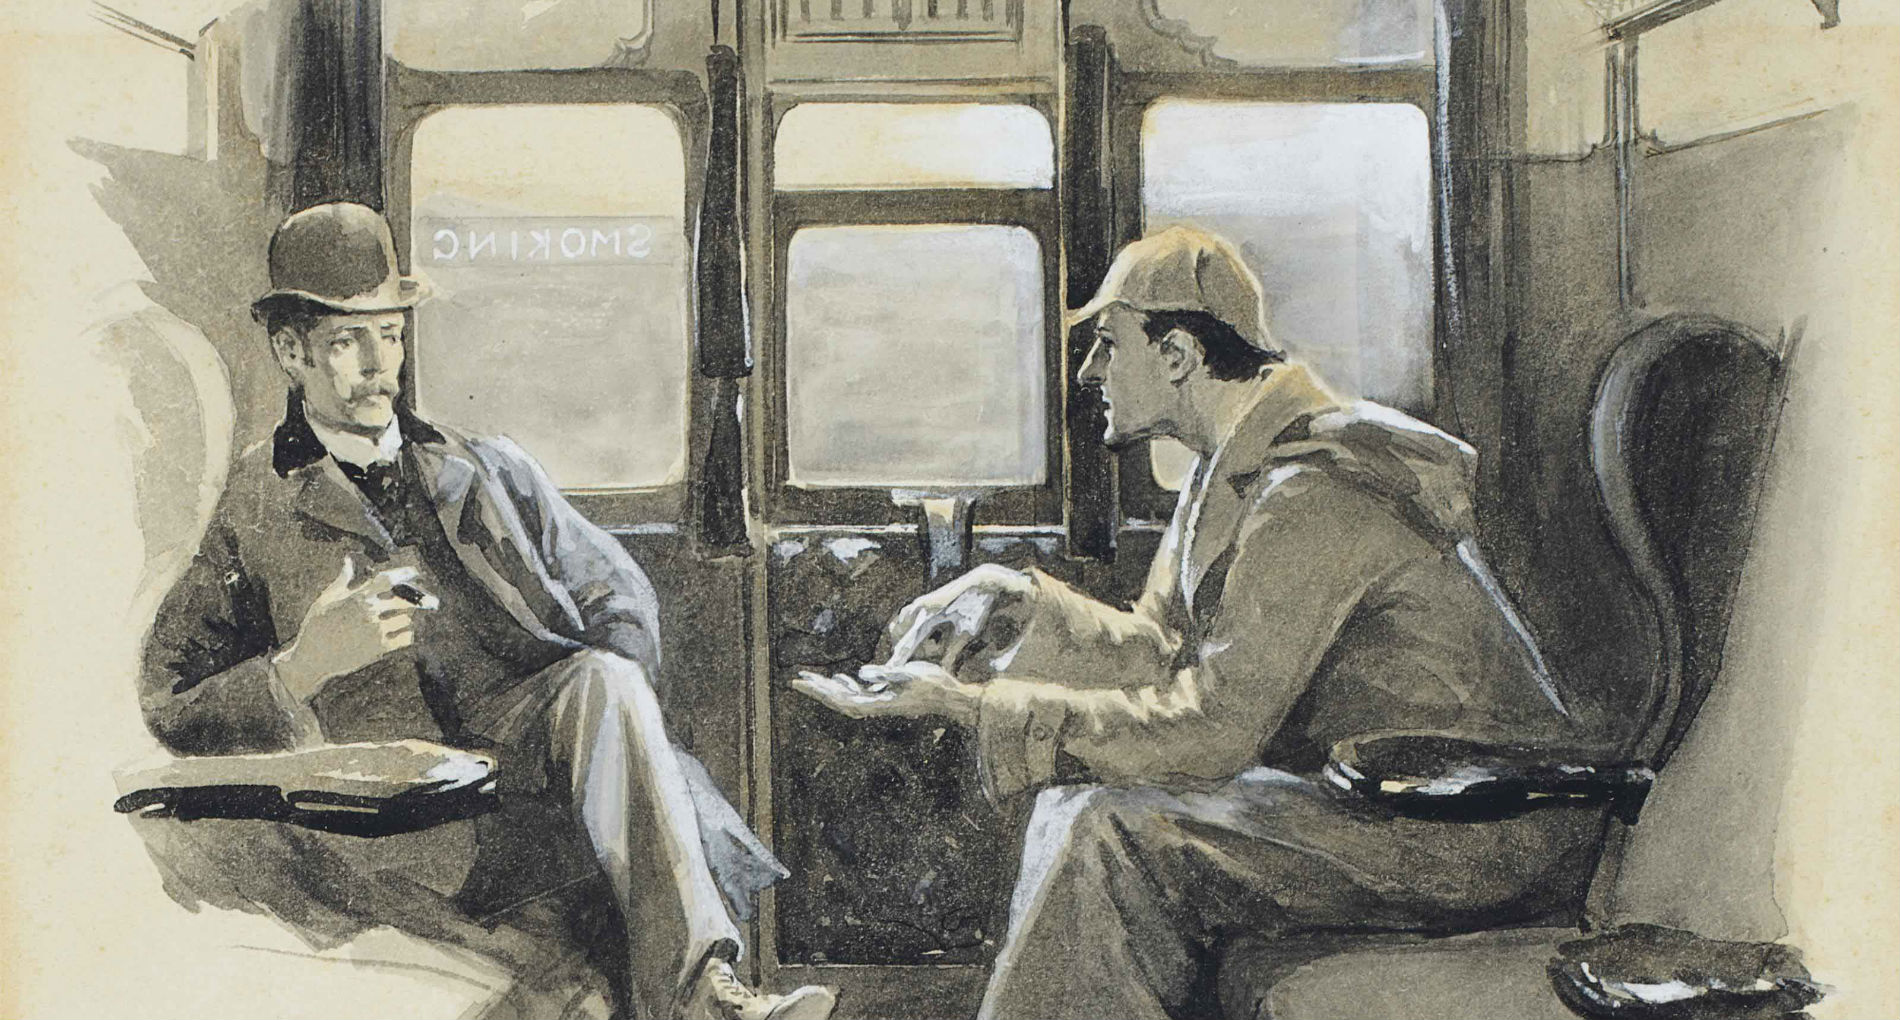 A Leading Sherlock Holmes Website Finds a Home at MSU